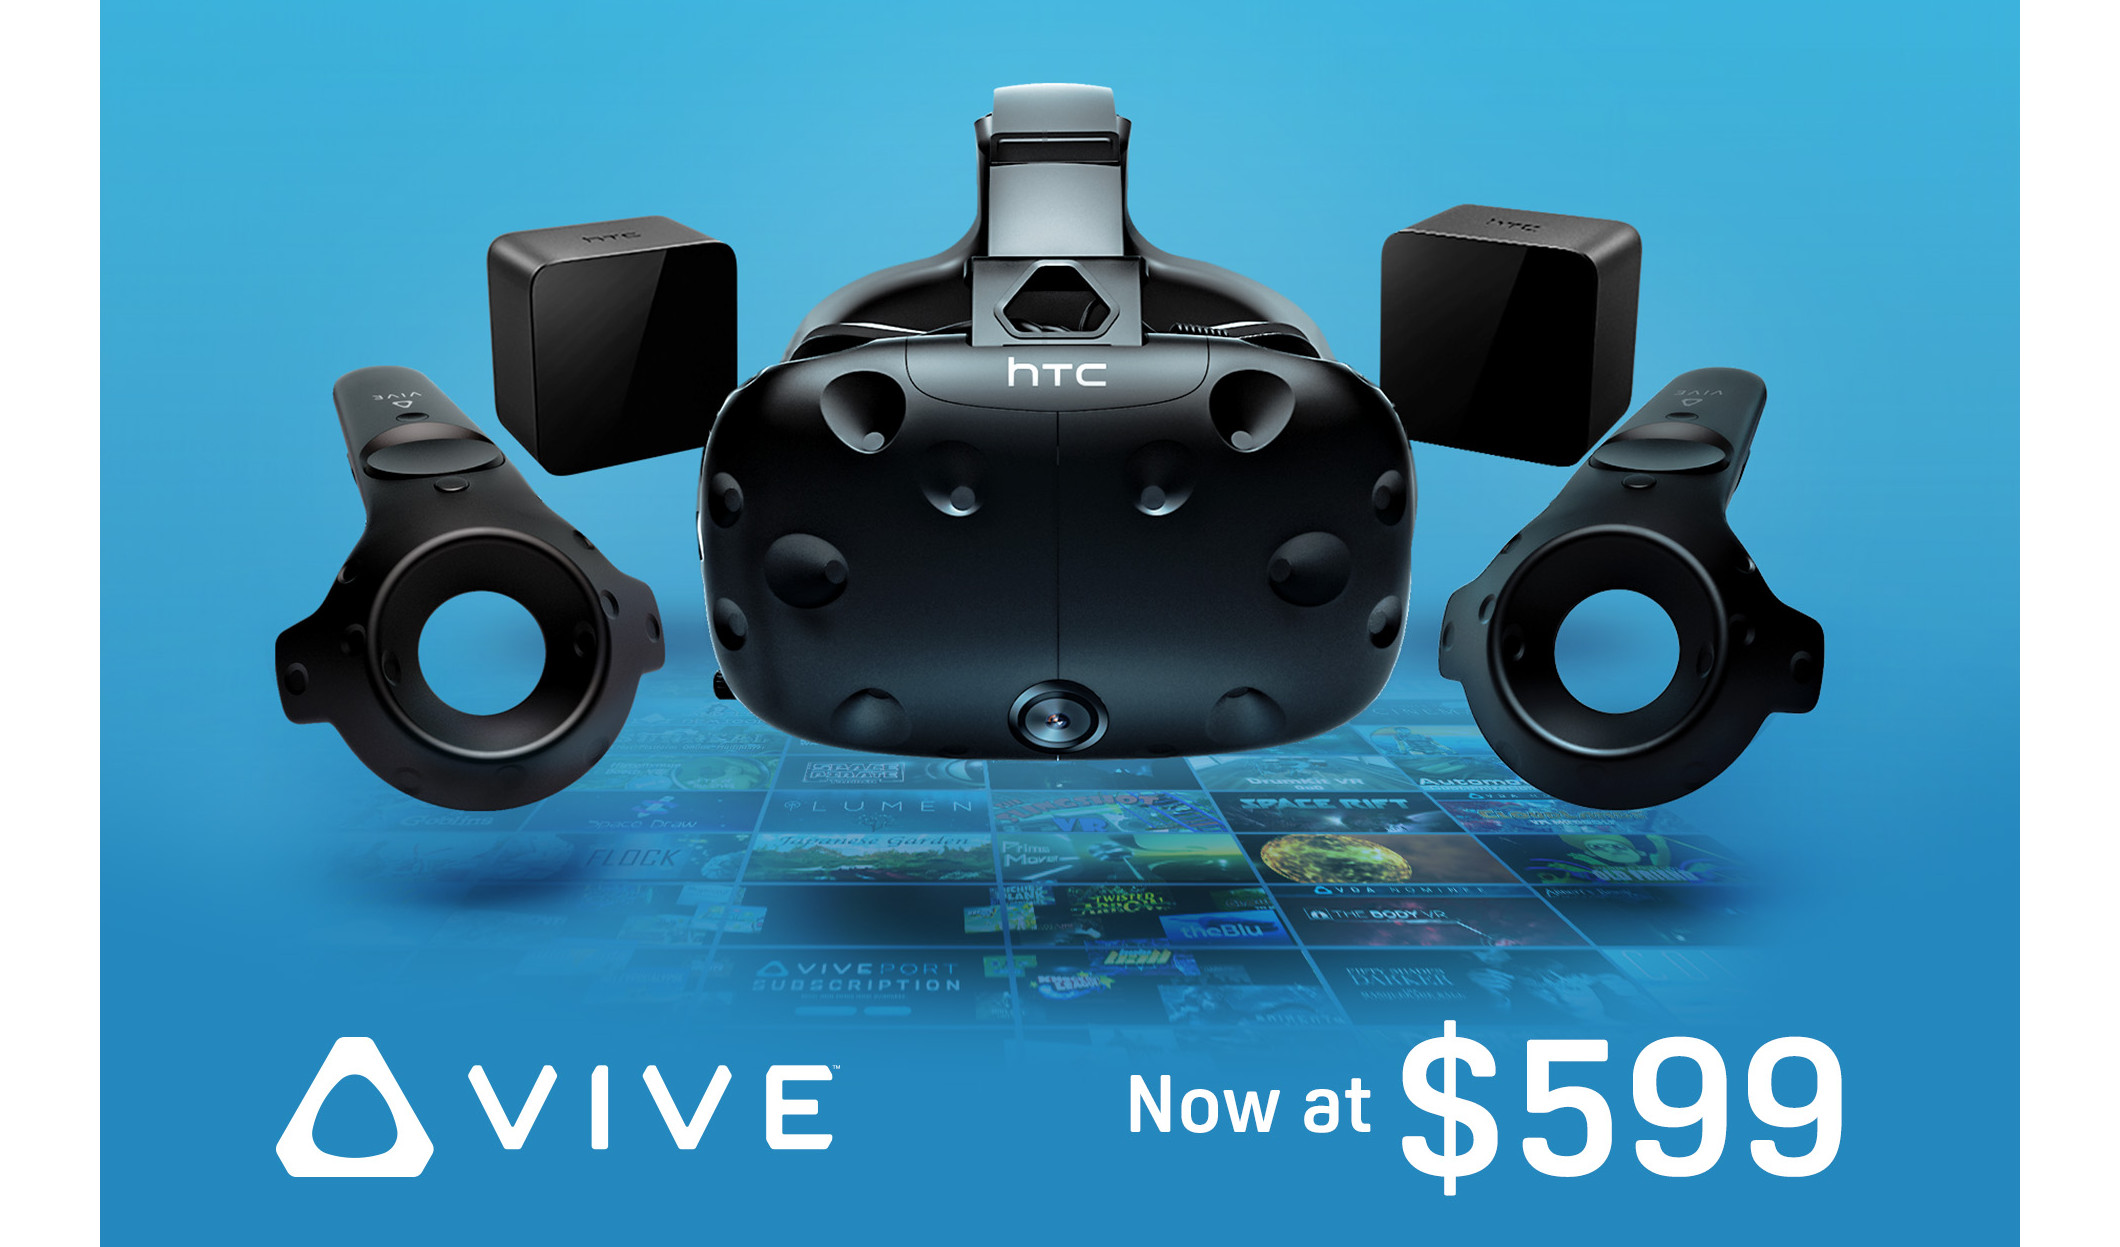 HTC Drops Vive Price To $599